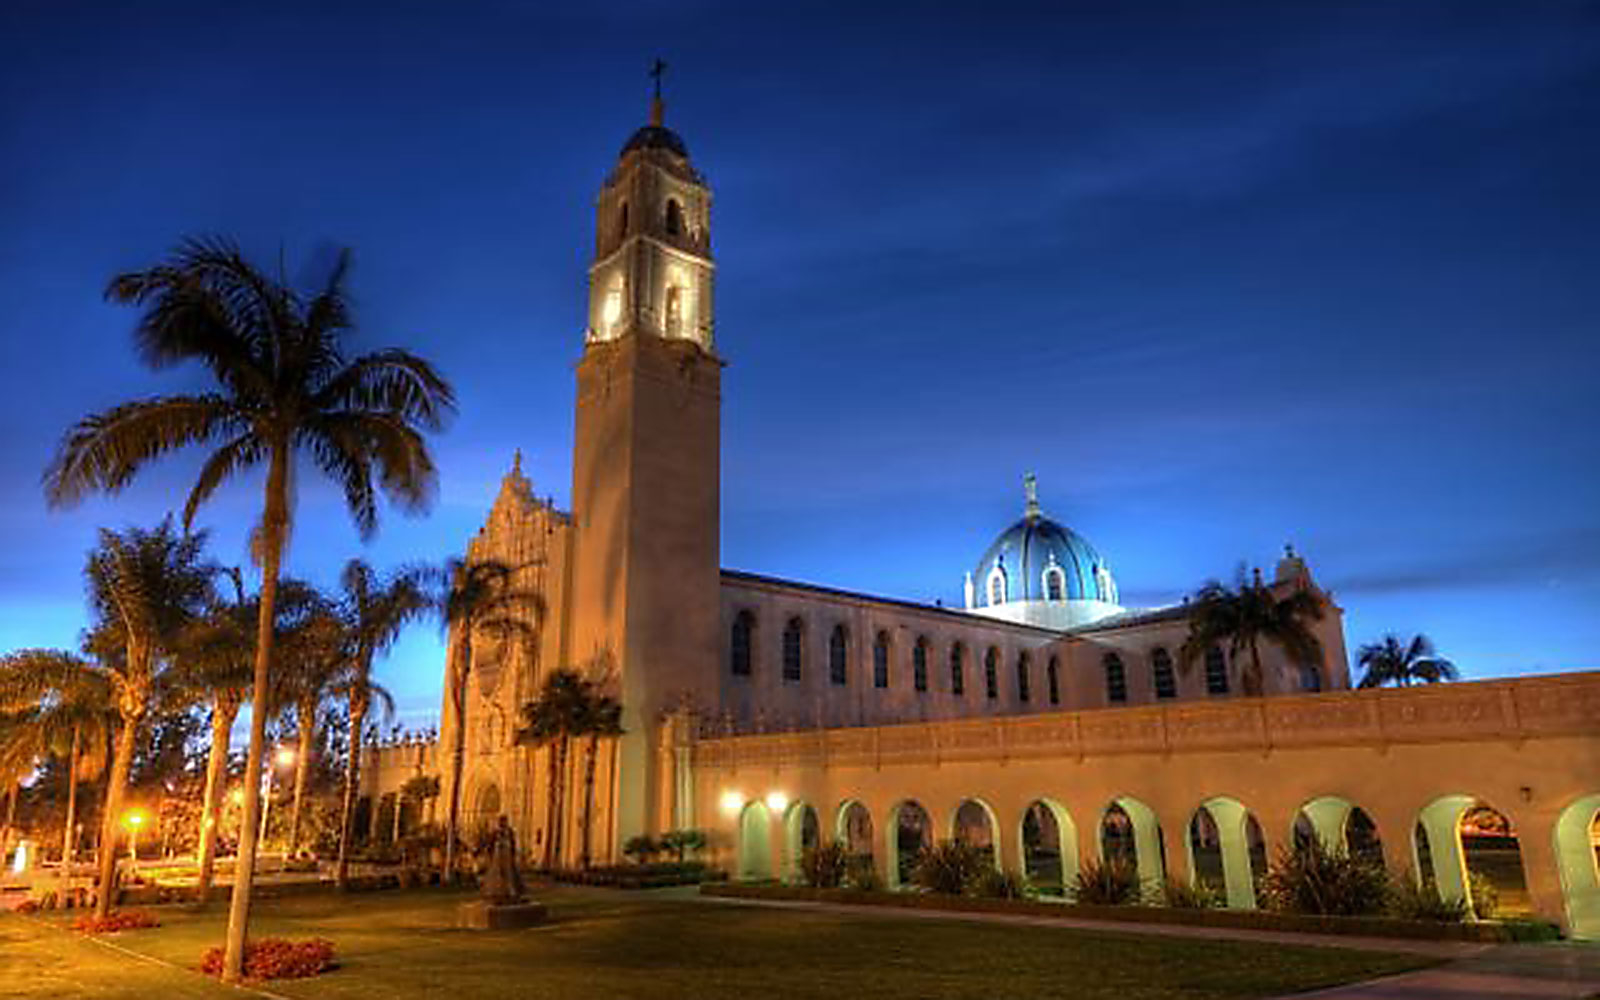 University of San Diego: San Diego - America's Most Beautiful College Campuses | Travel + Leisure